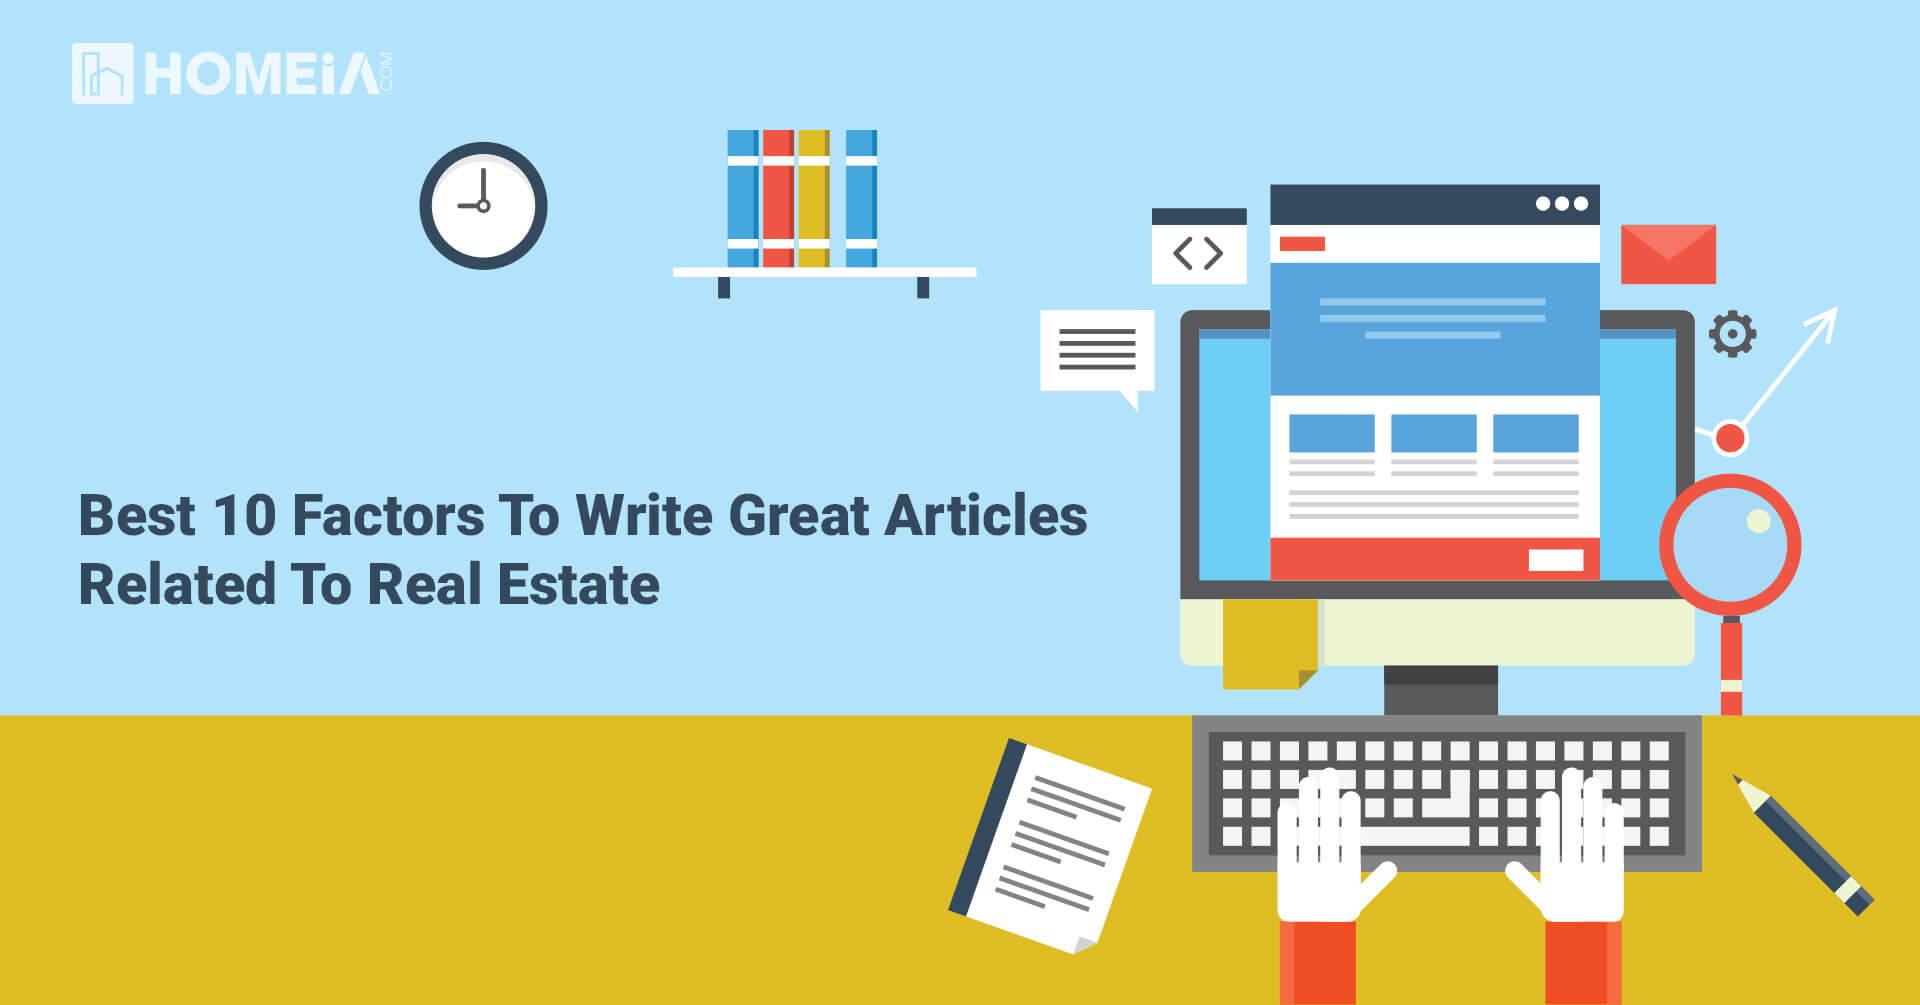 Best 10 Factors to Write Great Articles related to Real Estate